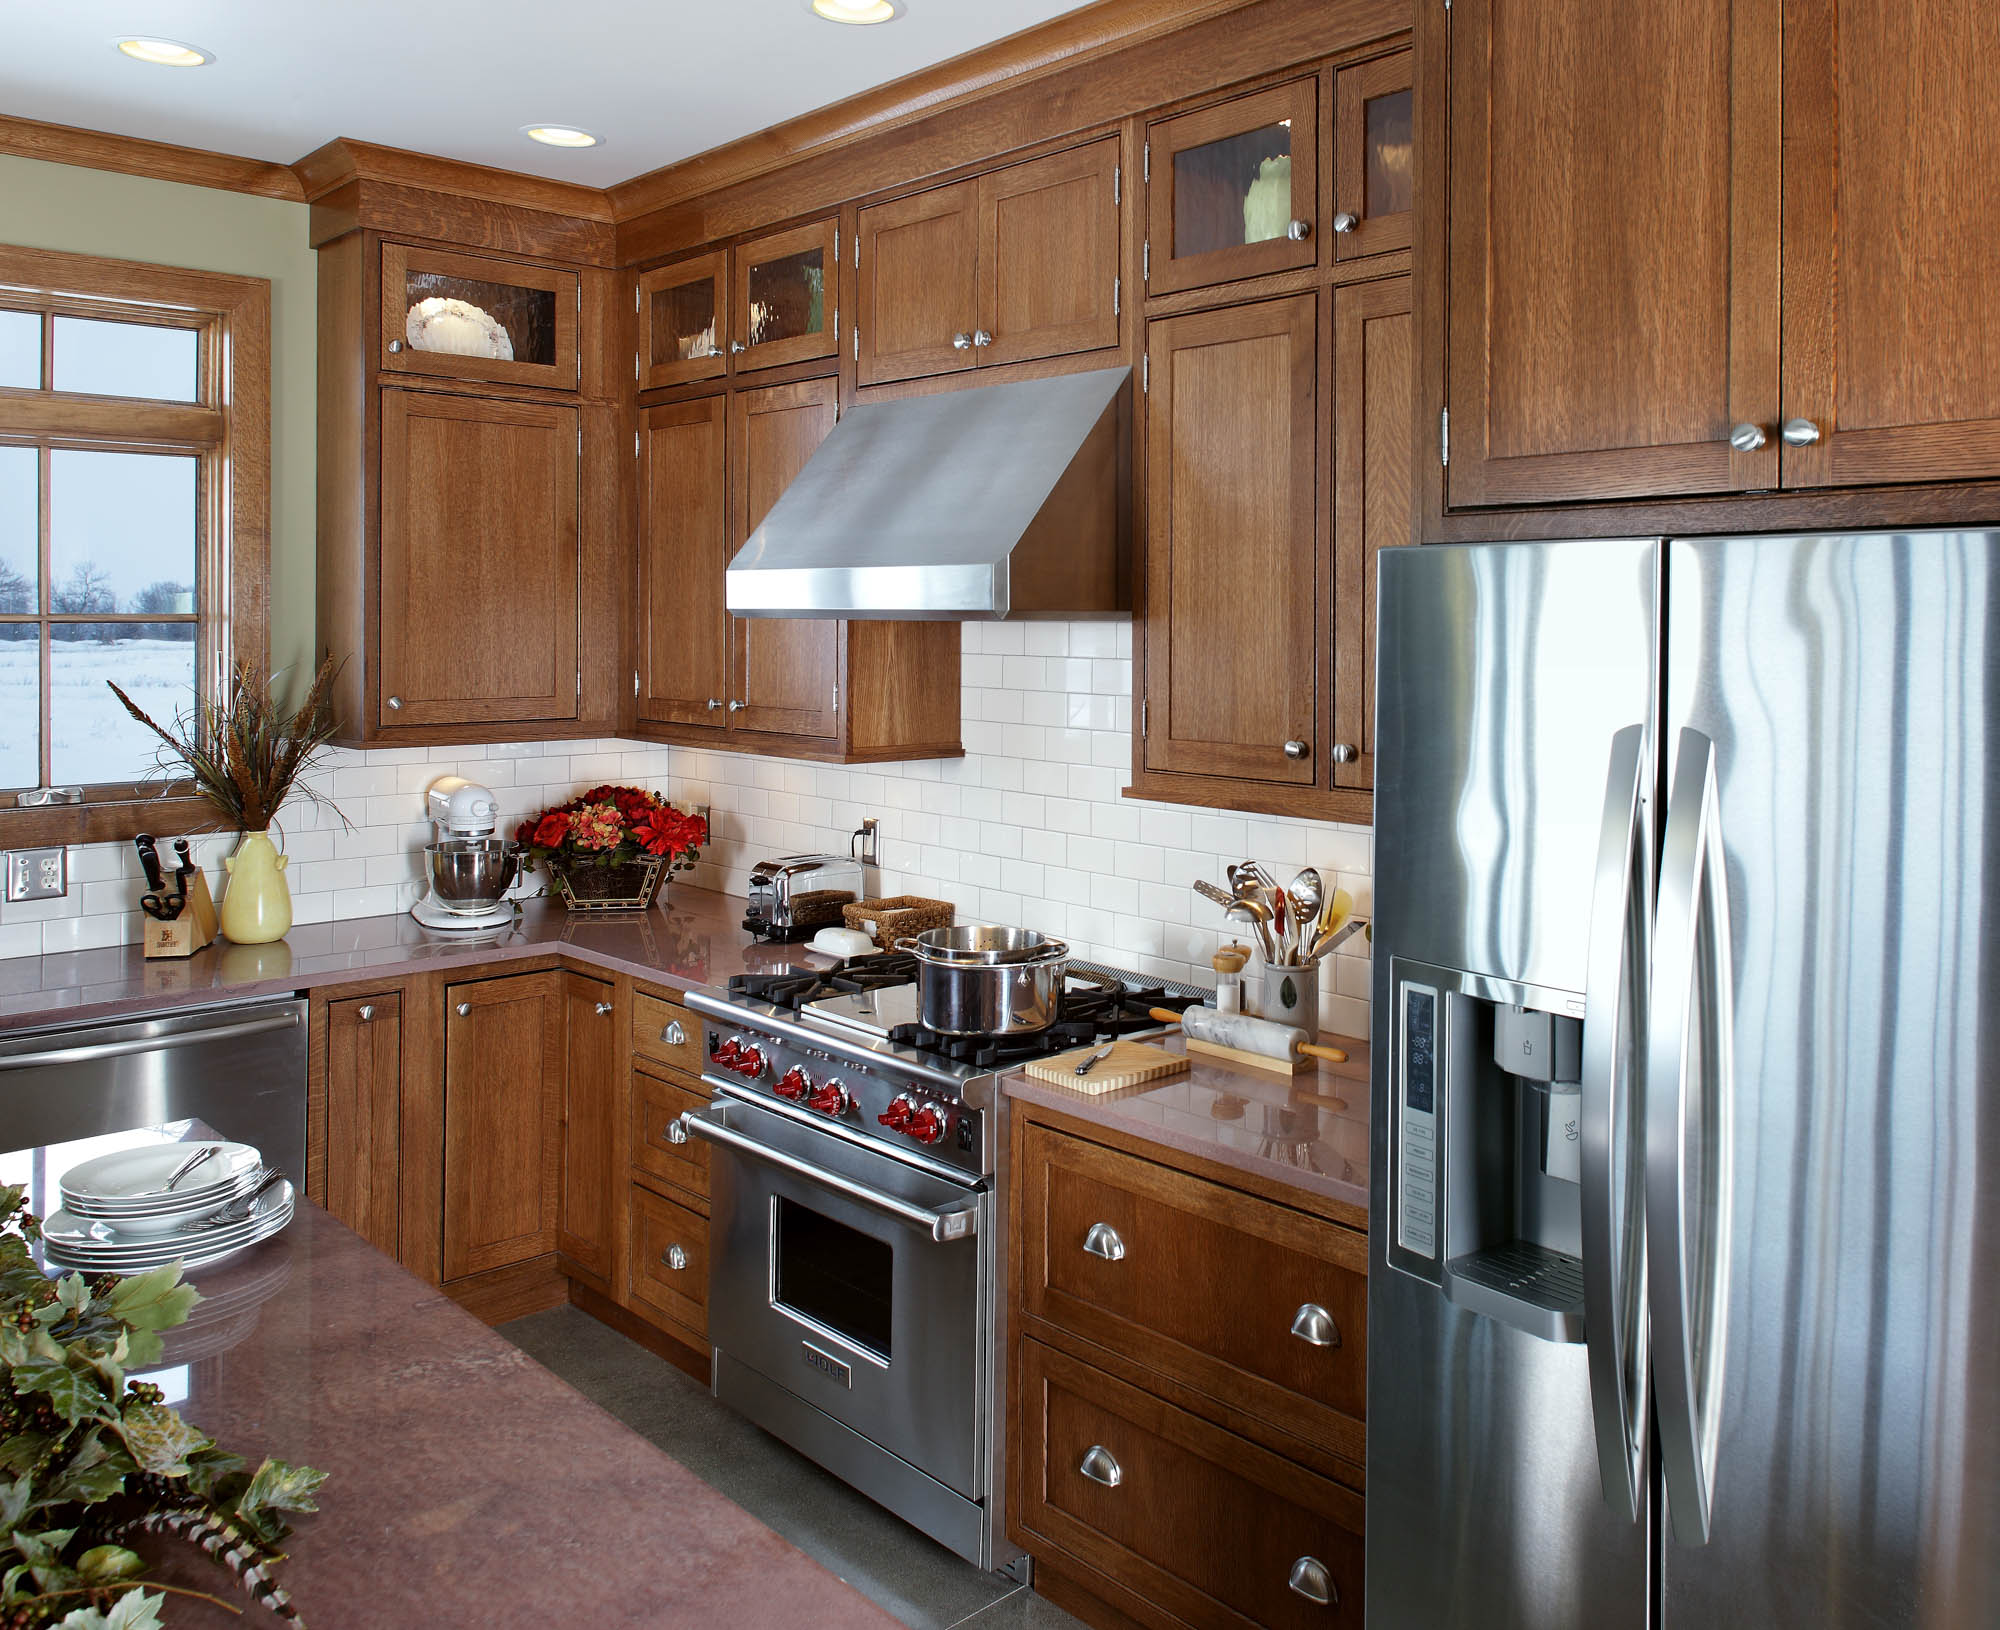 Stained kitchen cabinets in Truffle by Showplace Cabinetry - view 2